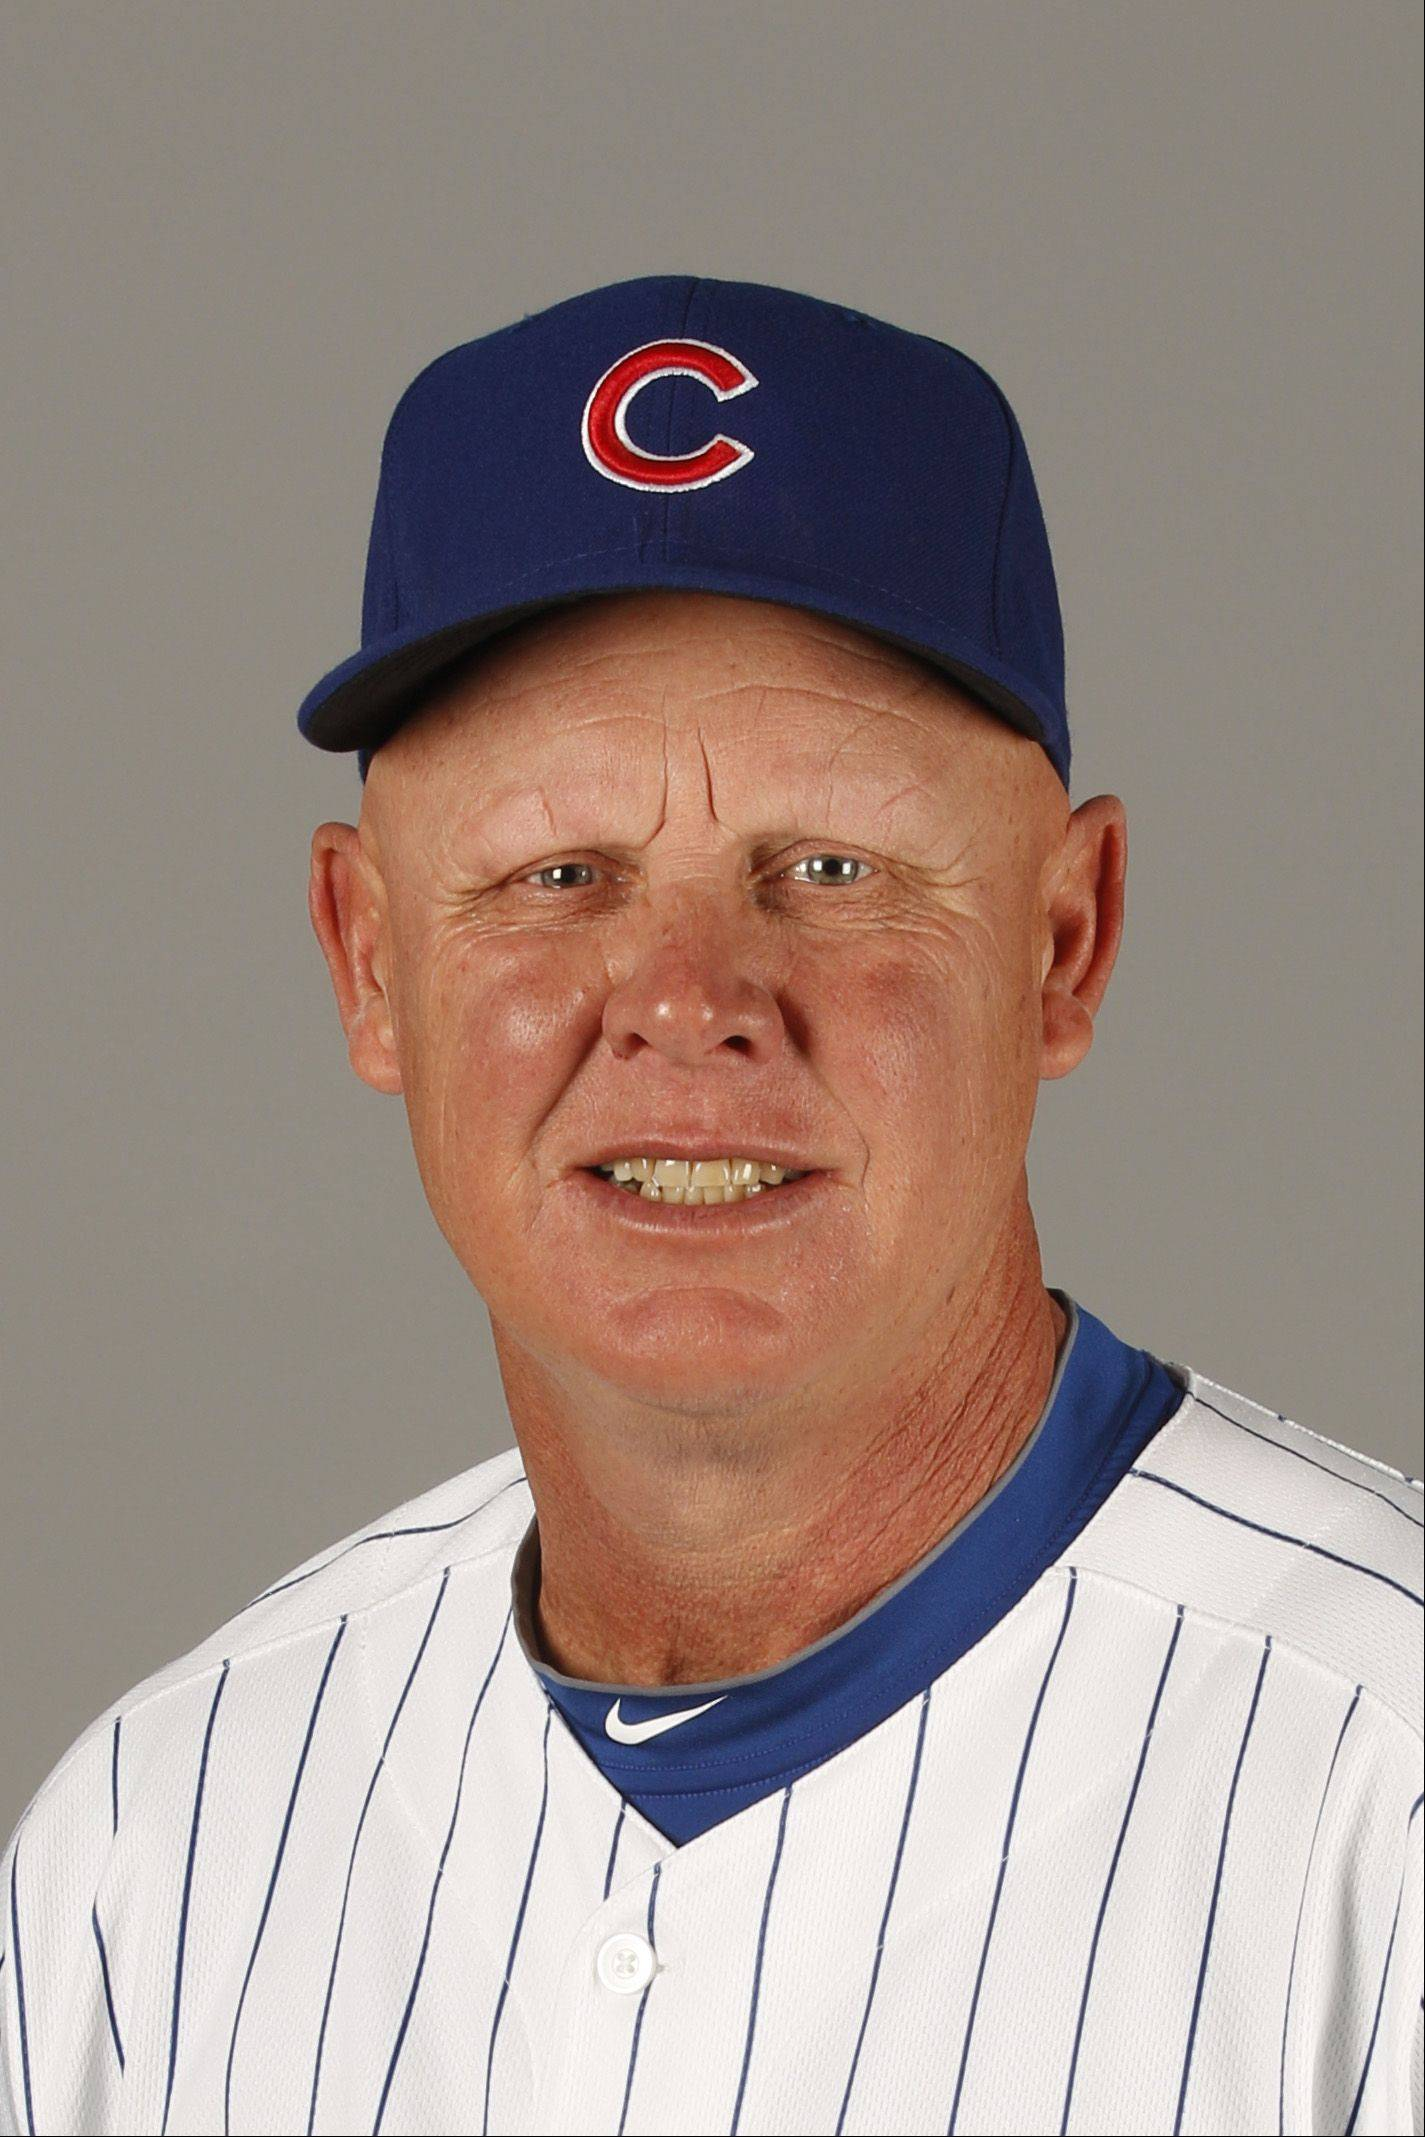 This is a 2011 photo of manager Mike Quade of the Chicago Cubs baseball team.